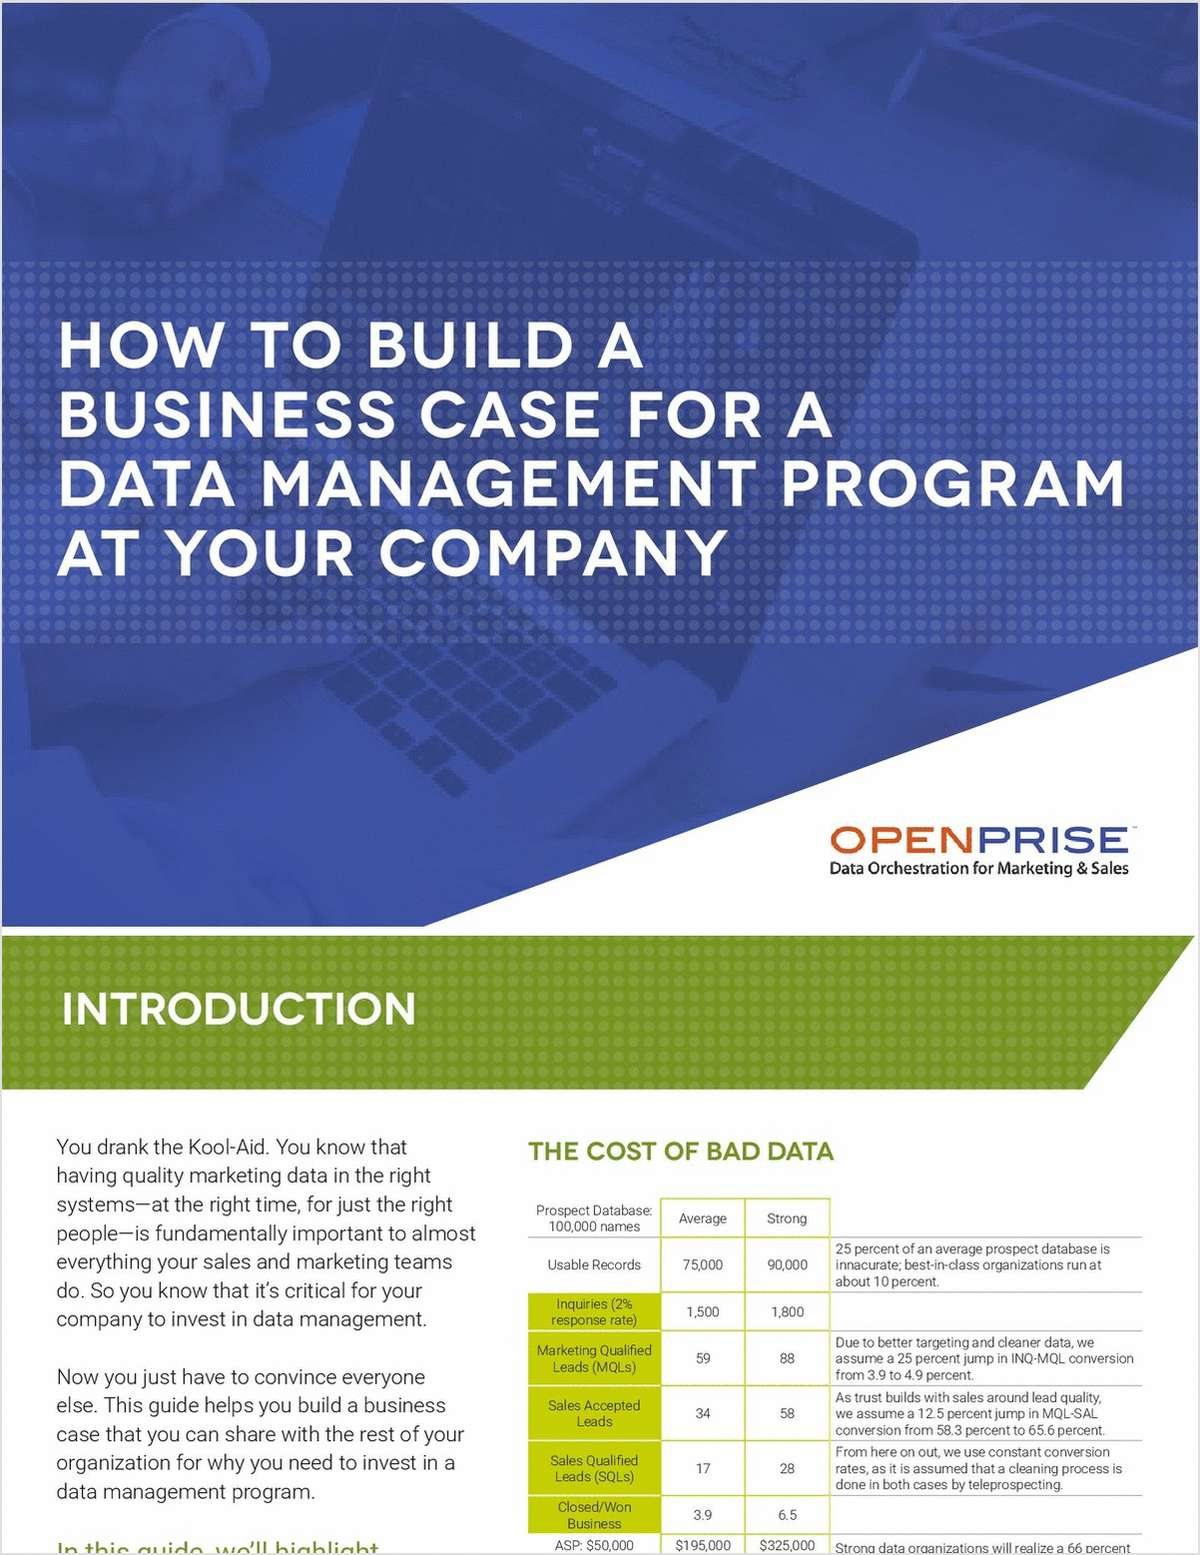 How to Build a Business Case for a Data Management Program at Your Company